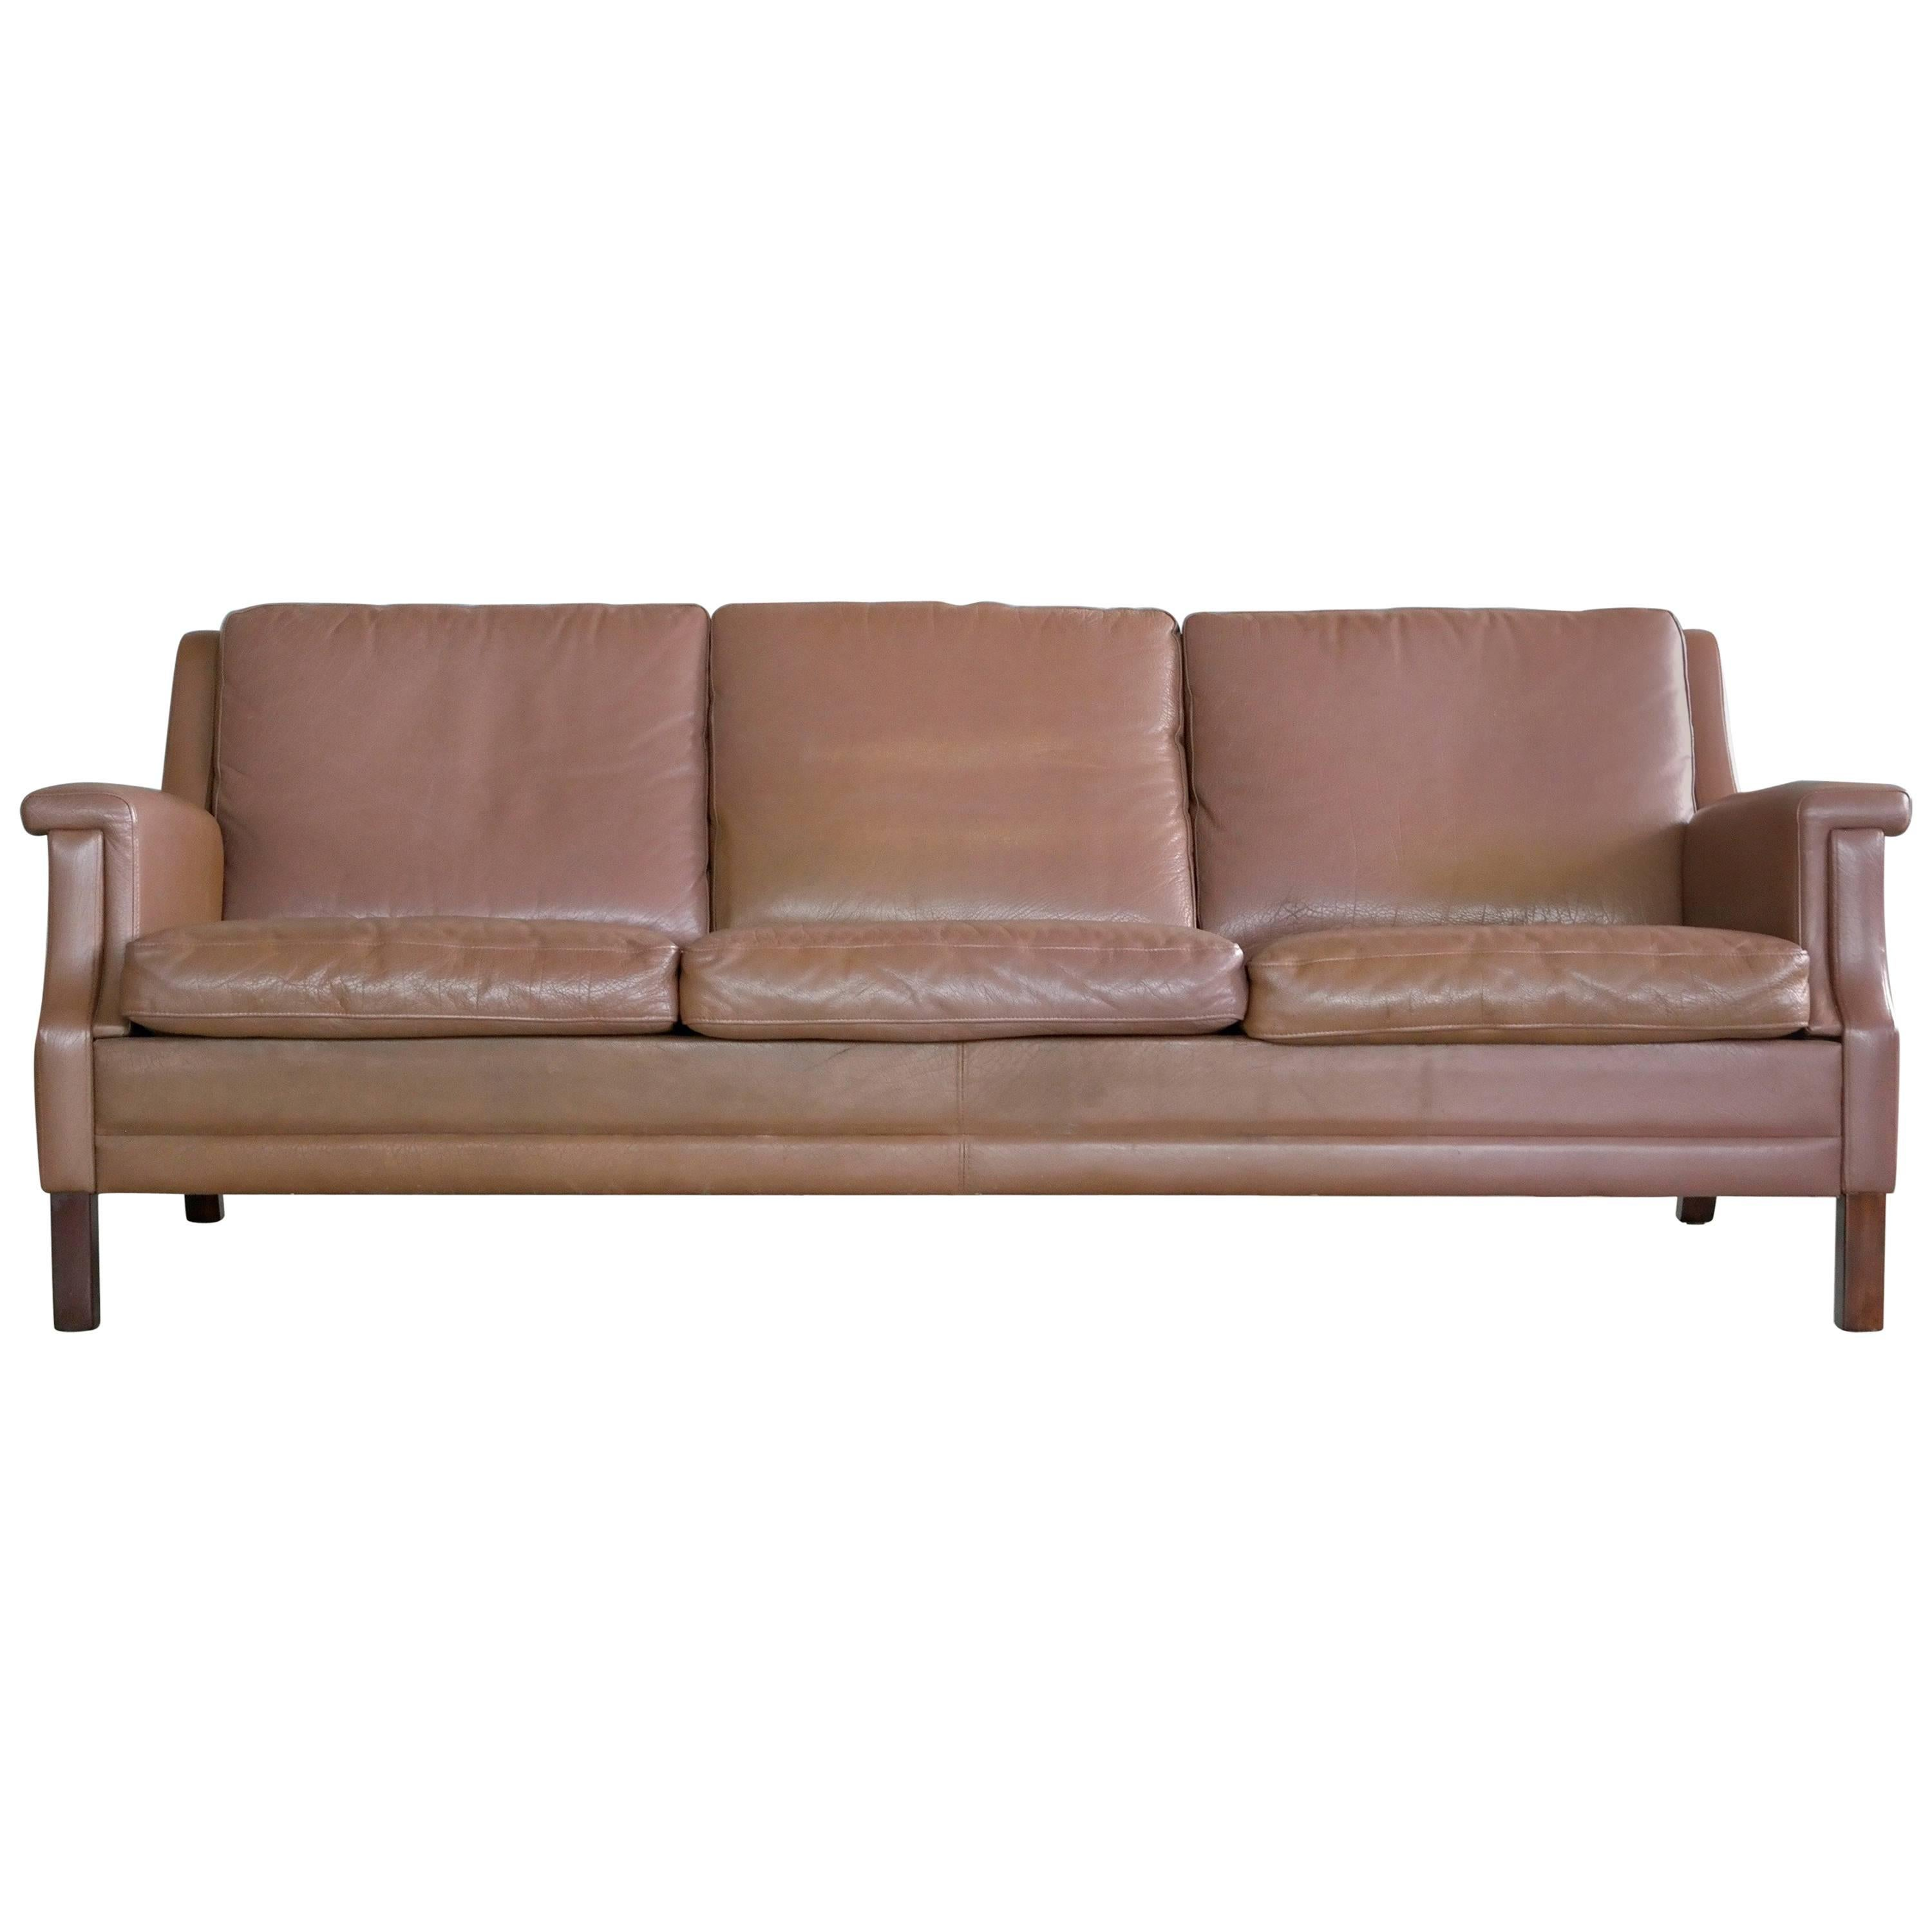 Classic Danish 1960s Sofa In Brown Buffalo Leather By Georg Thams For Sale